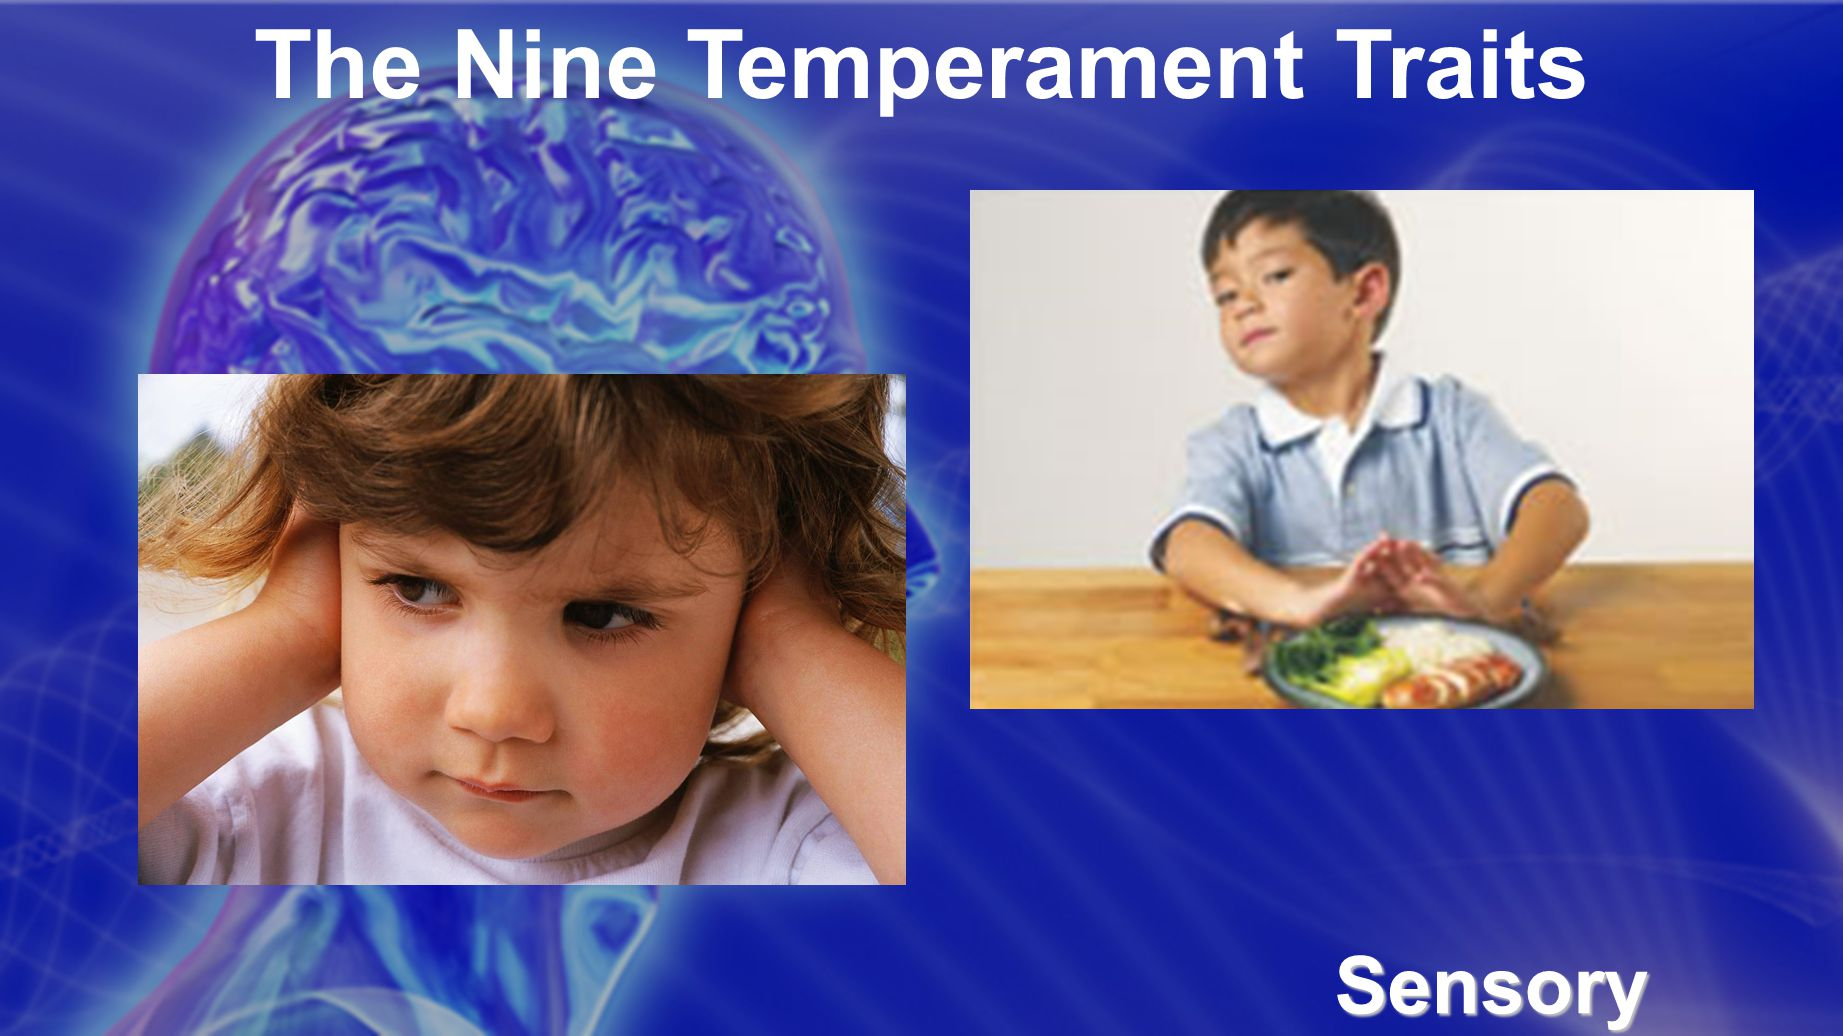 The Nine Temperament Traits Sensory Threshold